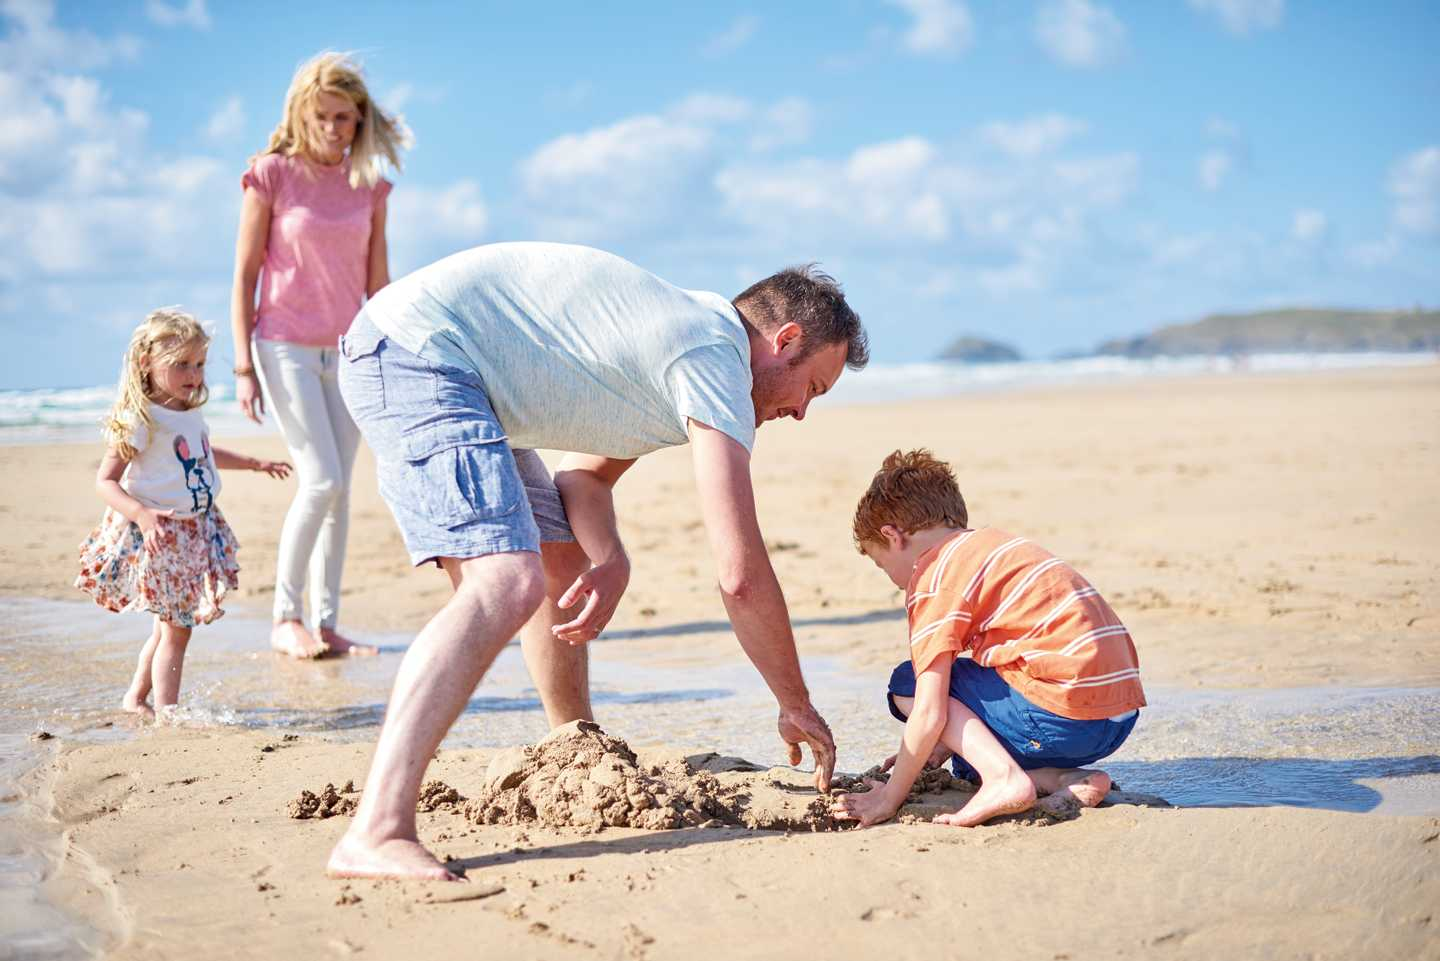 Guests building sandcastles on the beach in Cornwall